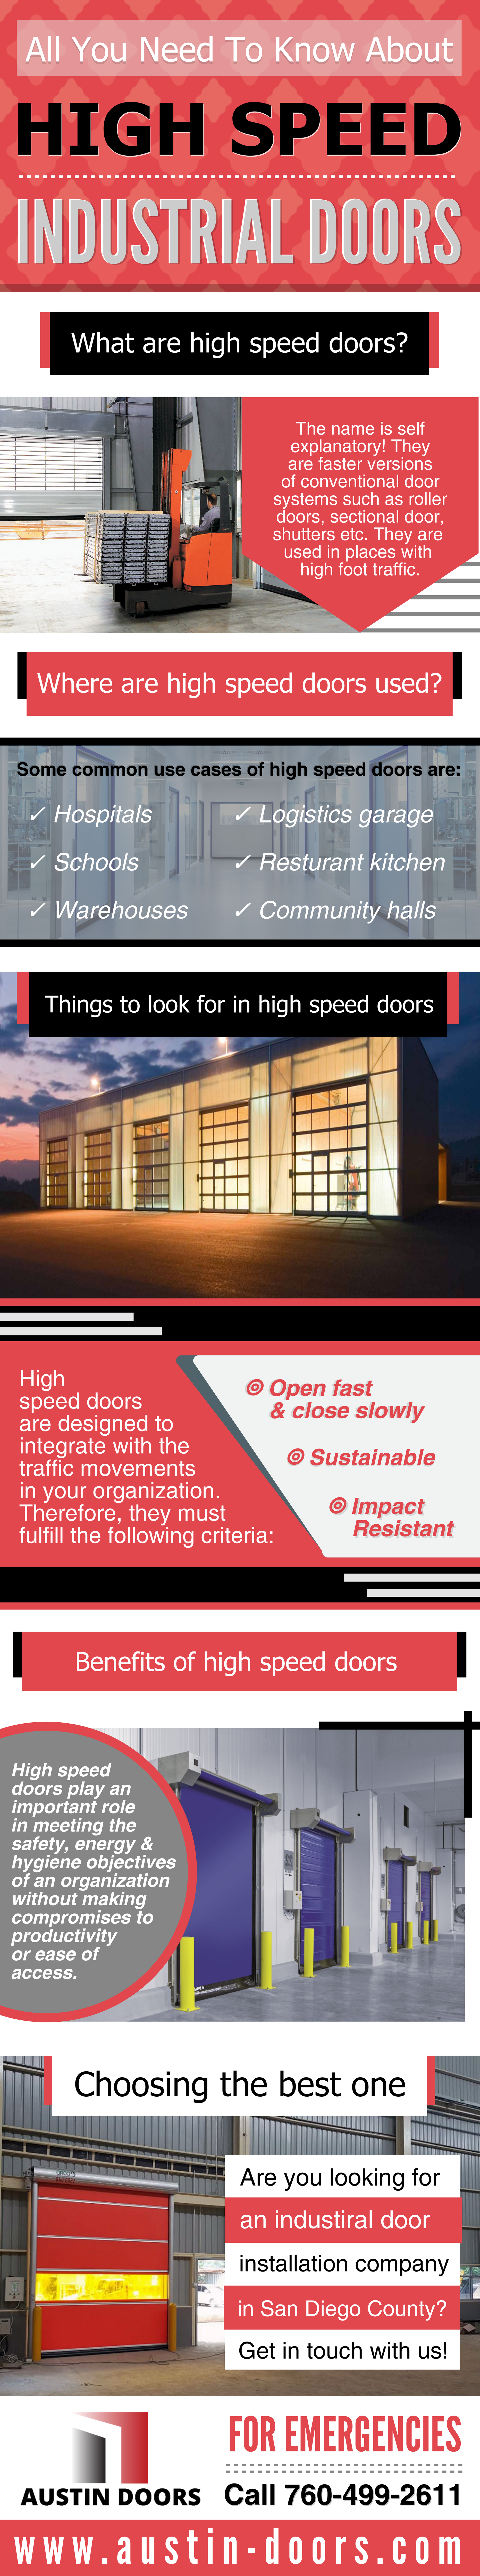 All You Need To Know About High Speed Industrial Doors